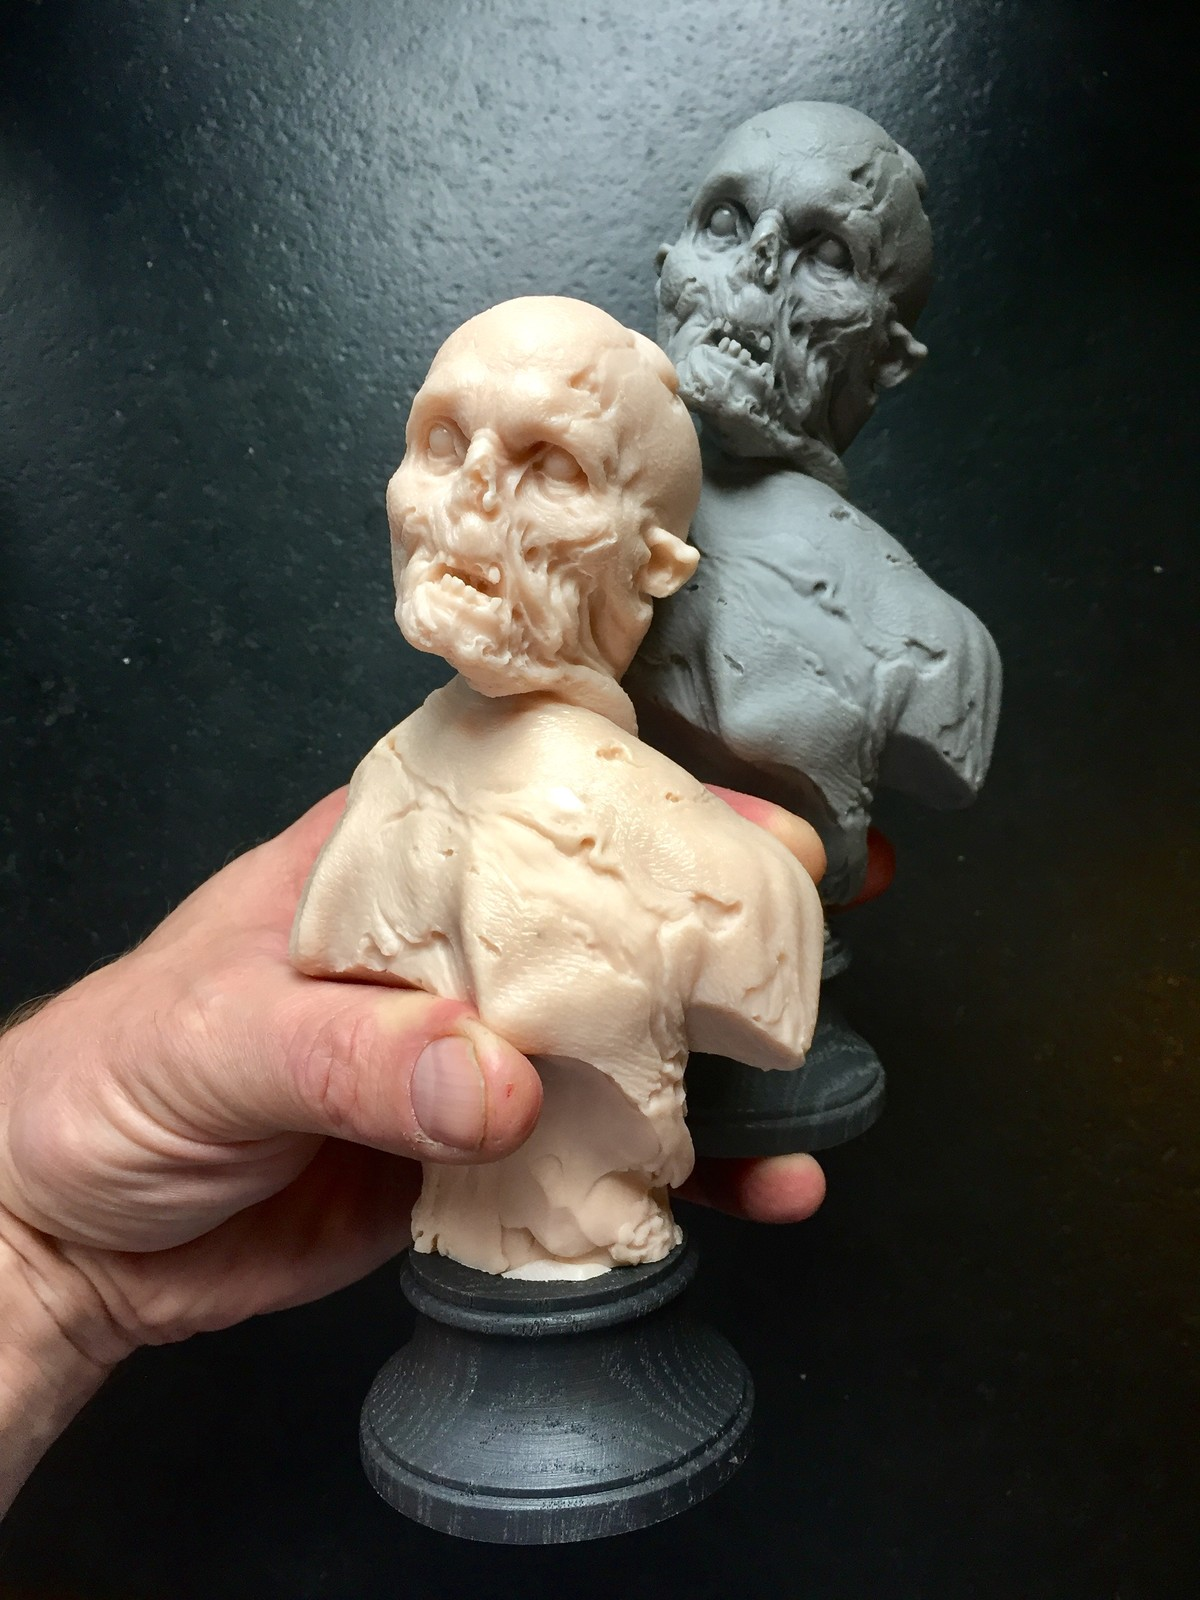 Zombies/cast resin